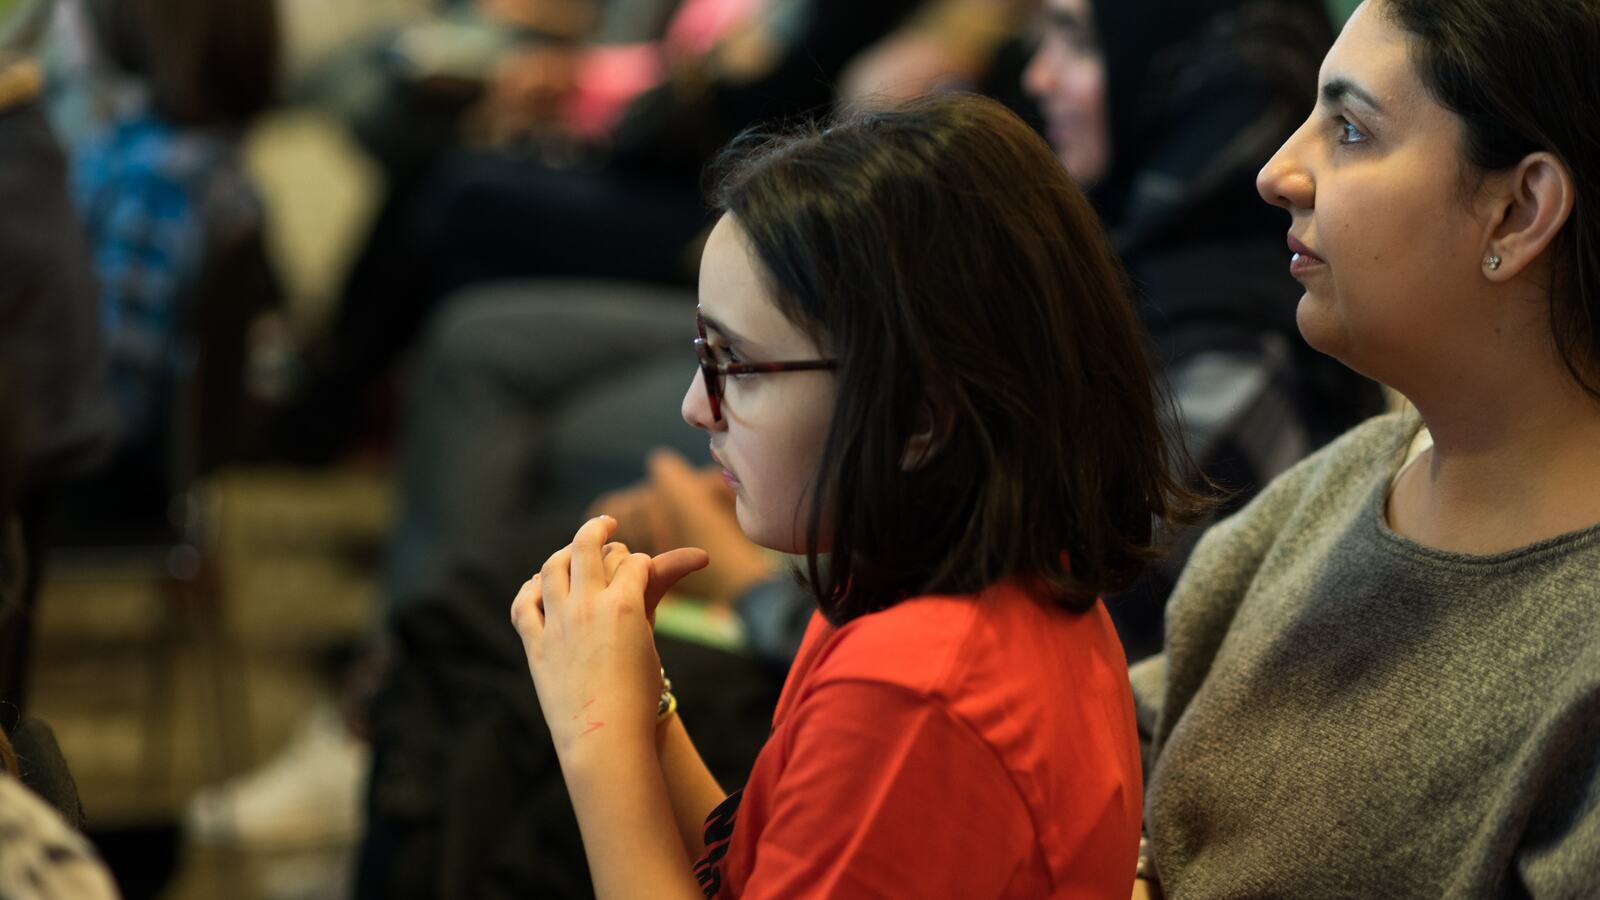 A young person watching a performance